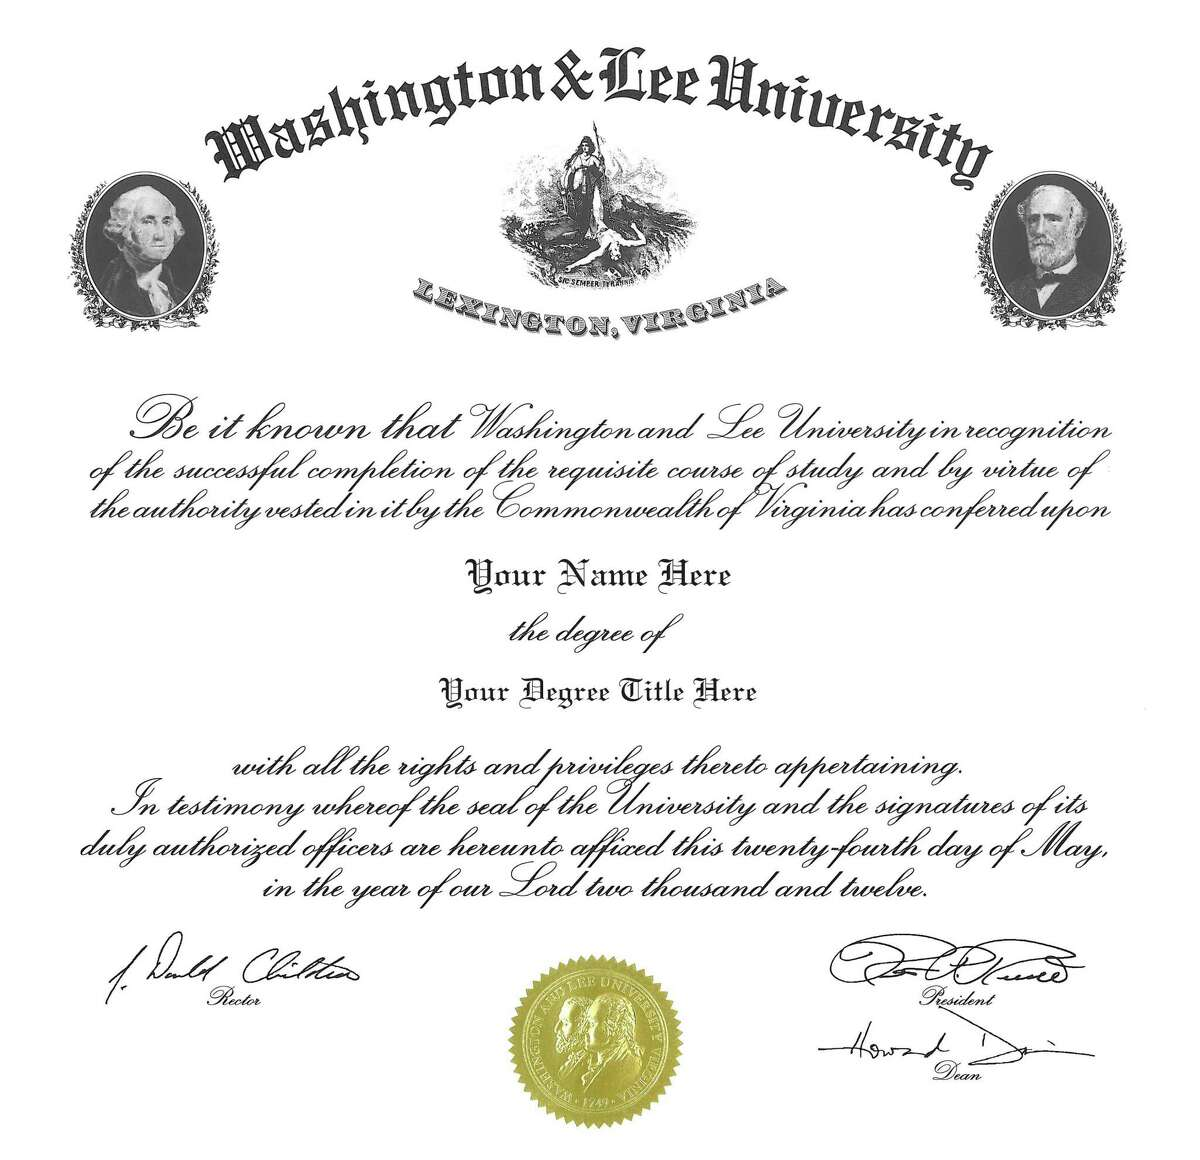 A 2012 sample of a Washington & Lee University diploma. Some students are objecting to having images of two slave holders, George Washington and Robert E. Lee, on their documents.